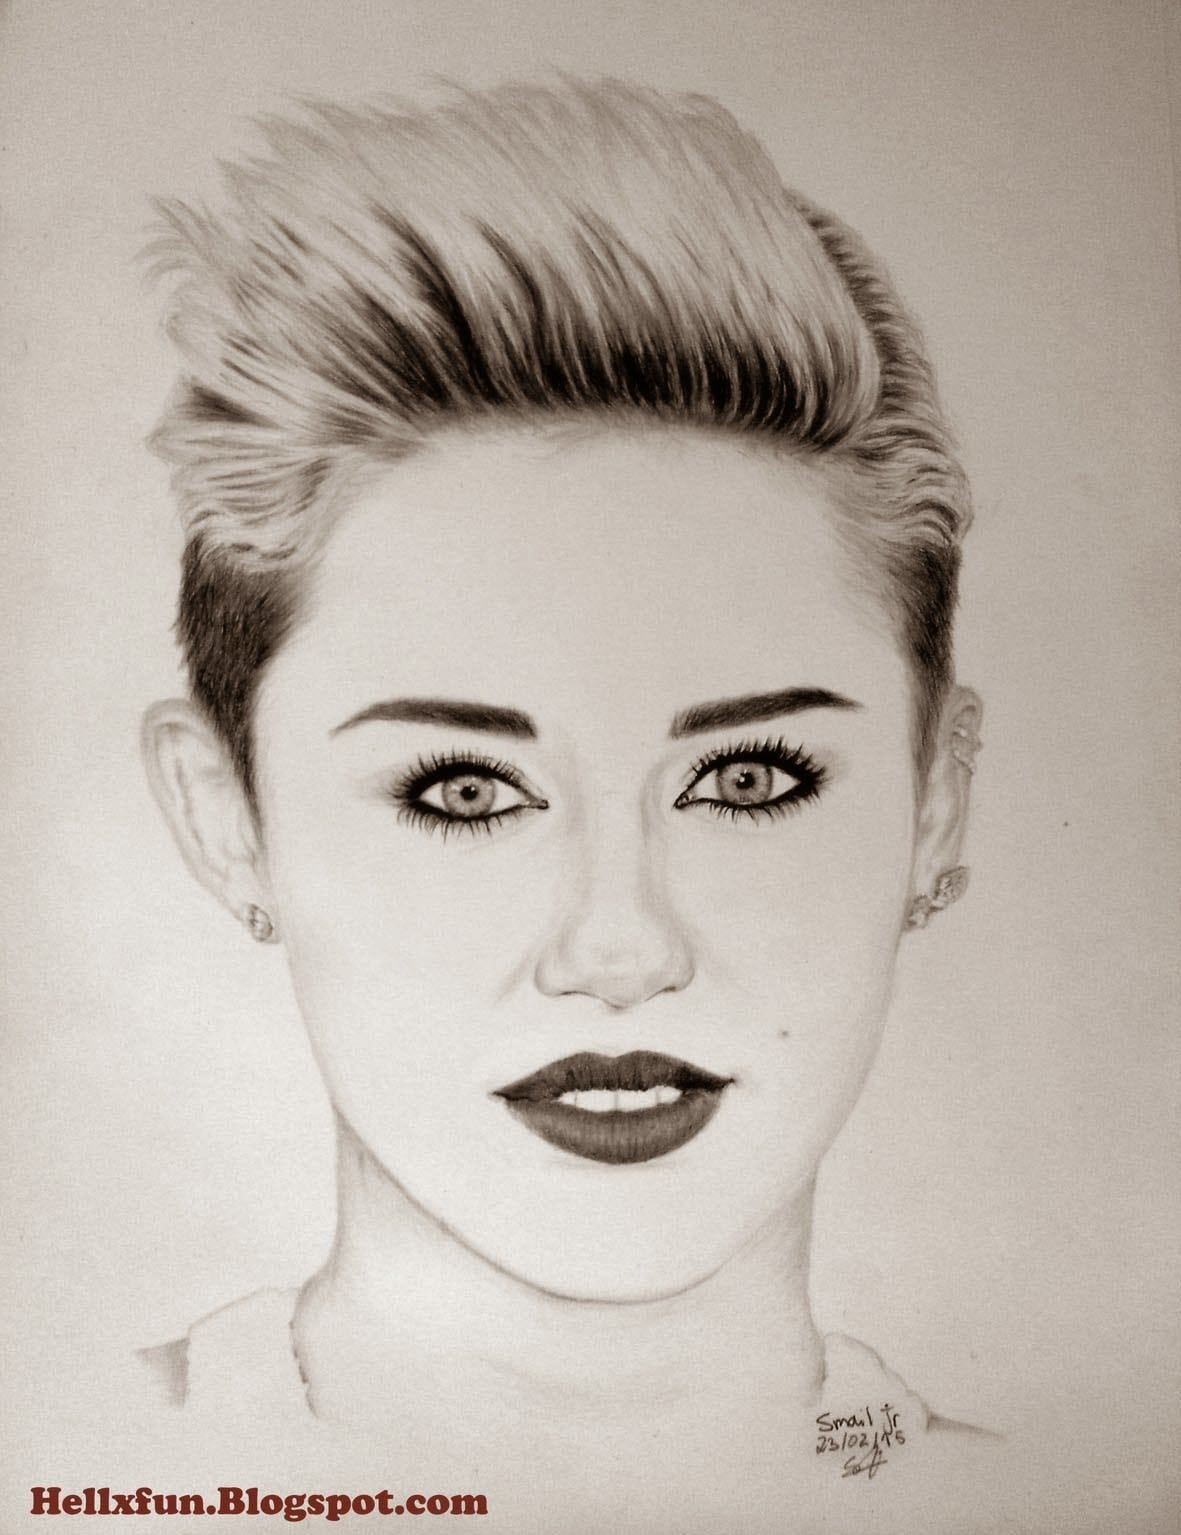 Miley  Cyrus  Mileycyrus  Miley_cyrus  Pencil  Portrait  Drawing